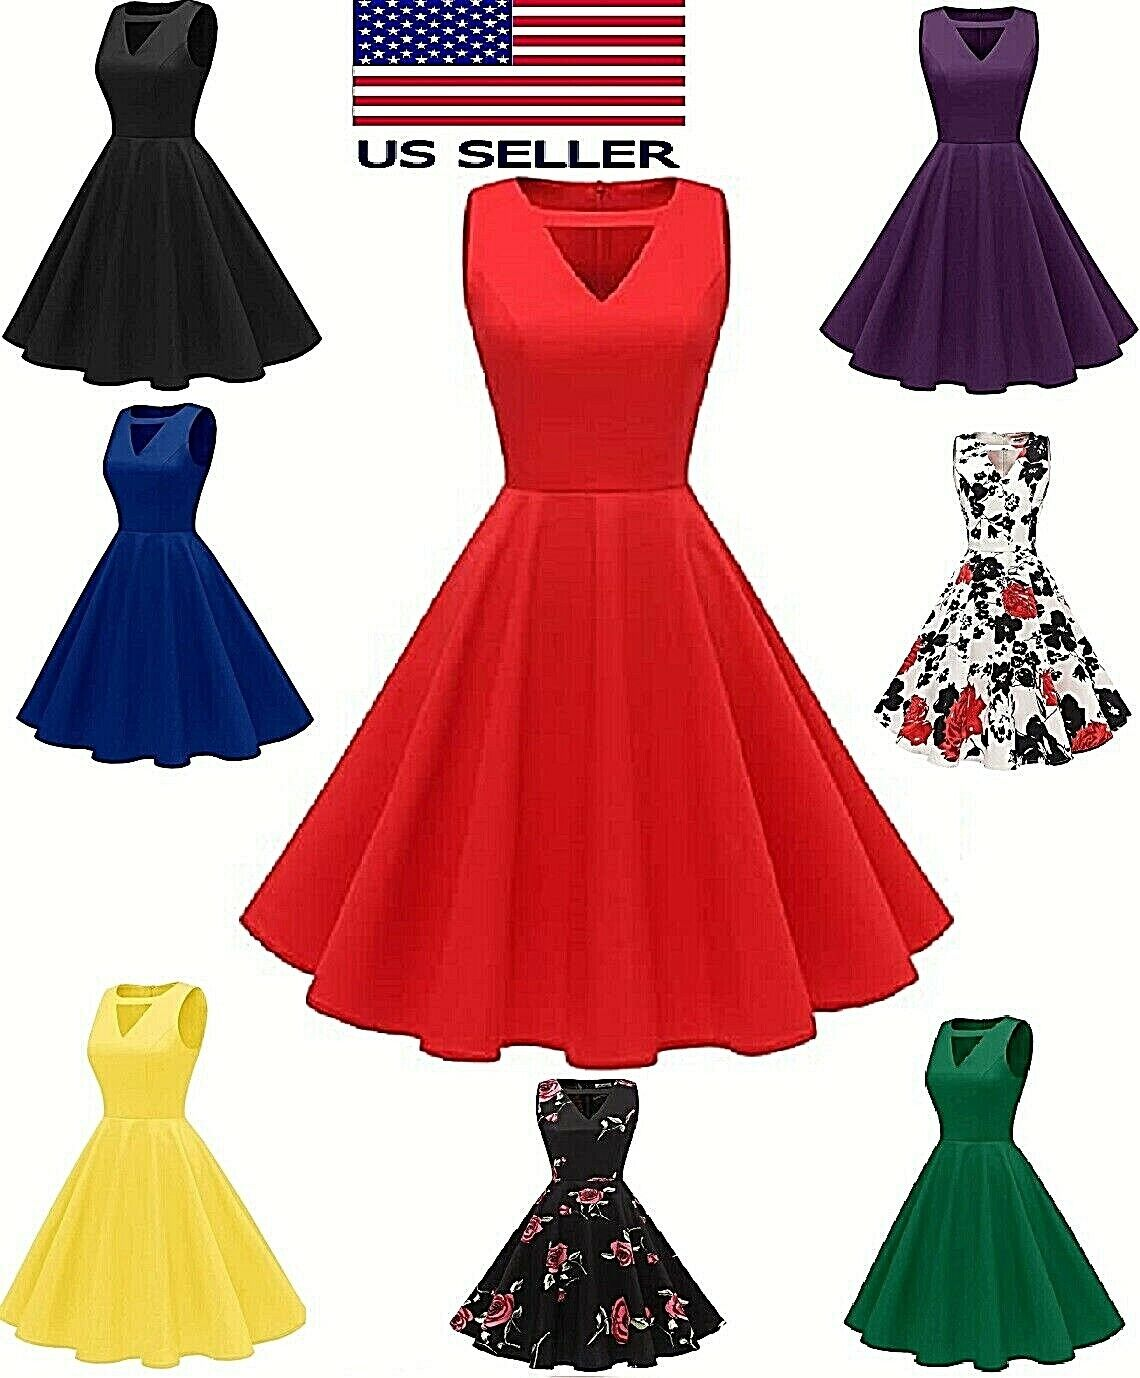 Women's Vintage 1950s Retro Rockabilly Cocktail Party V Neck Swing Dress FASHION Clothing, Shoes & Accessories